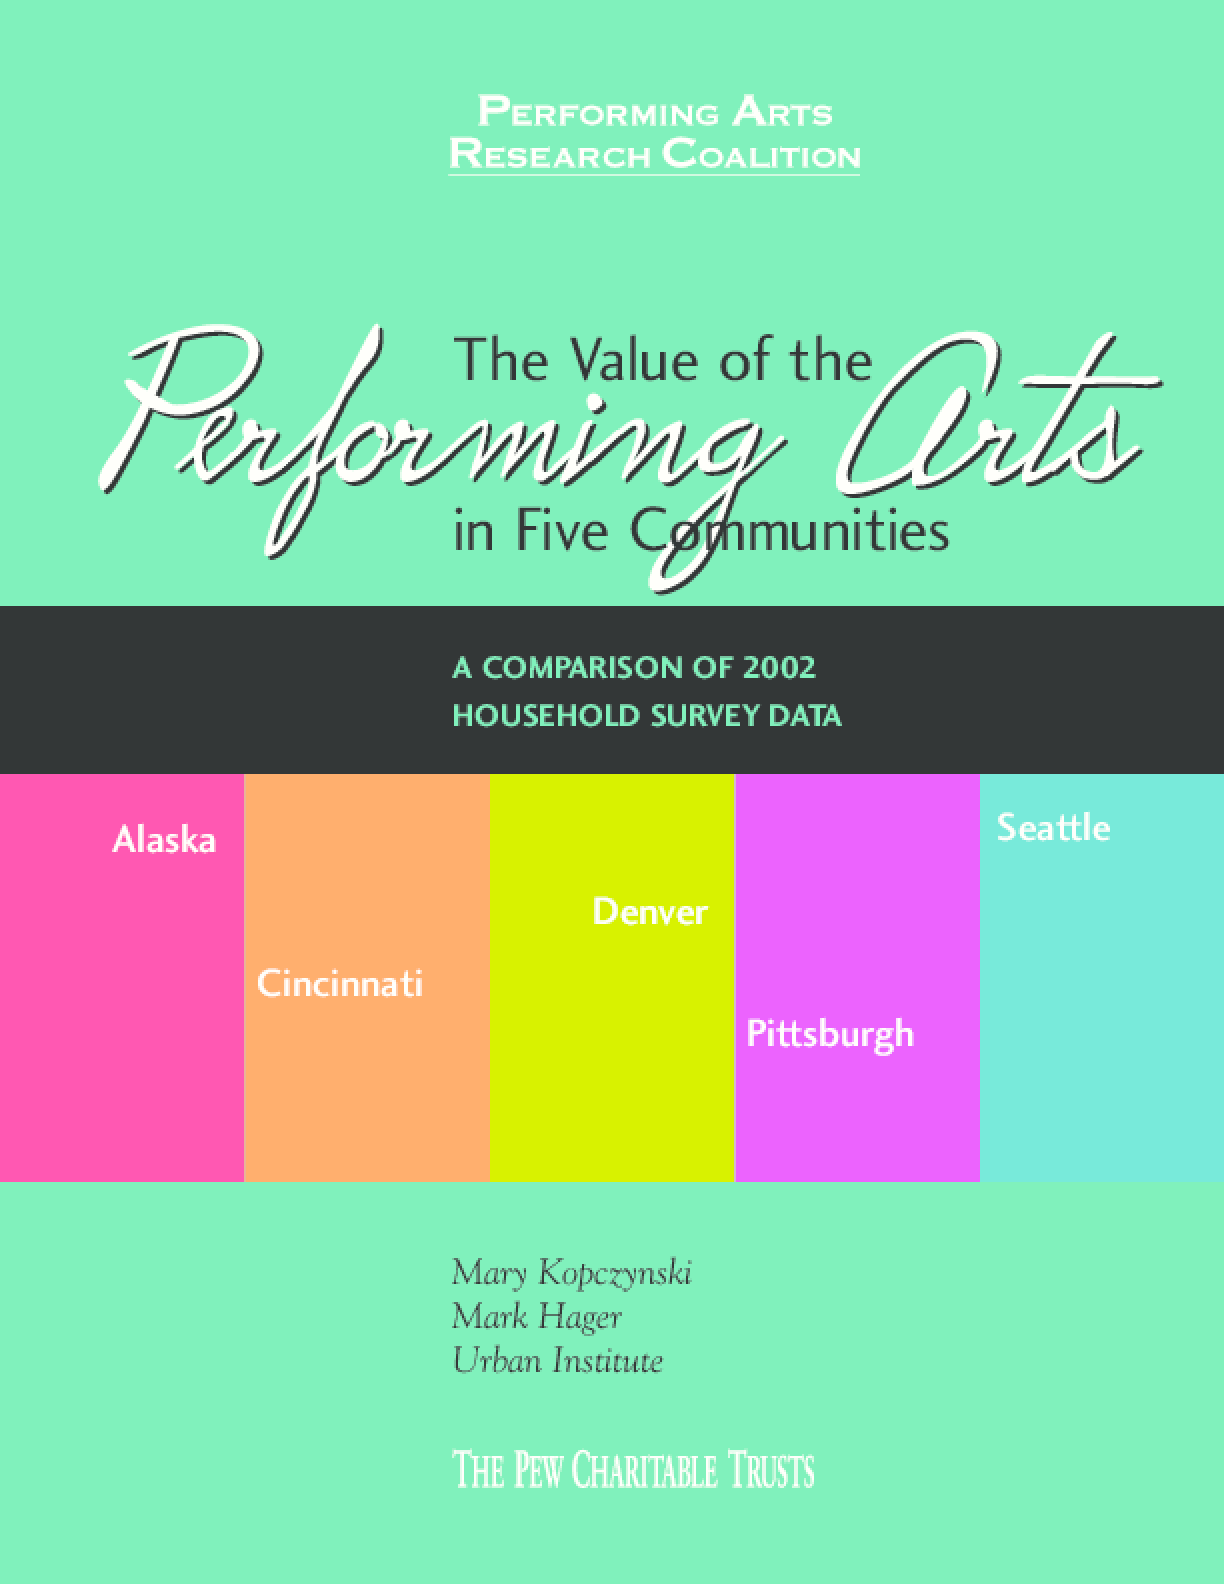 The Value of the Performing Arts in Five Communities